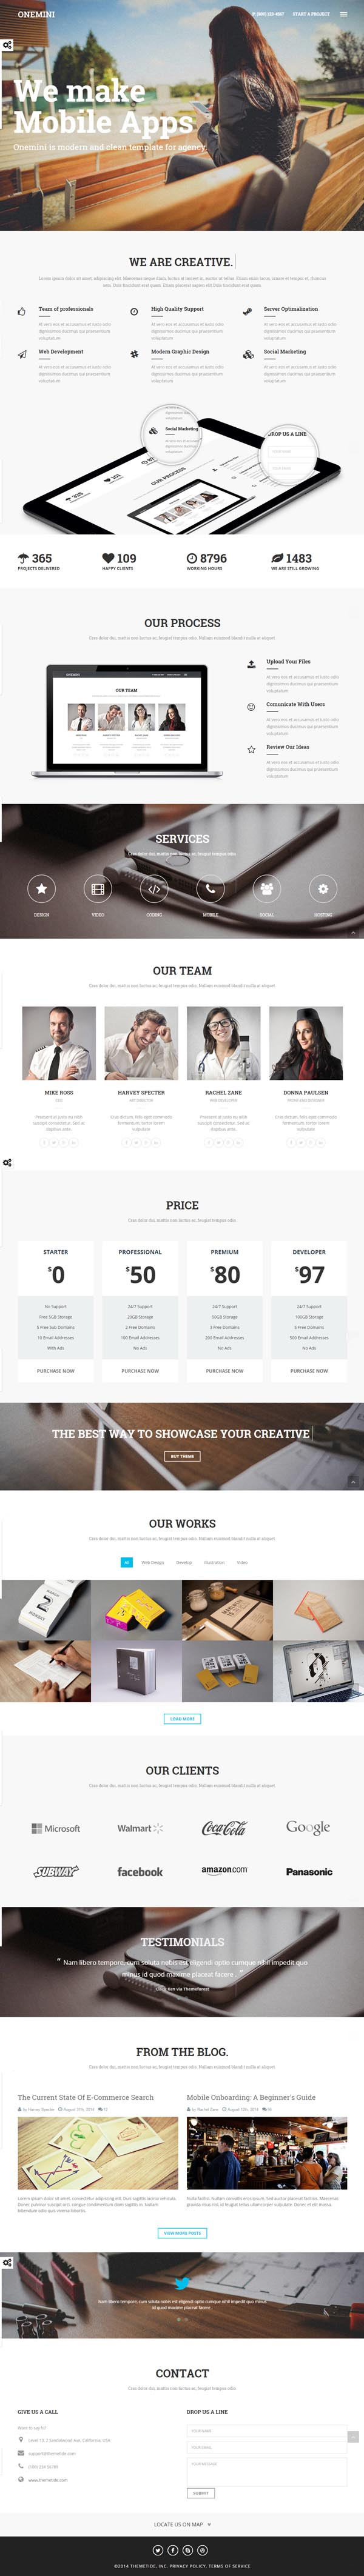 Onemini - Onepage HTML5 Template